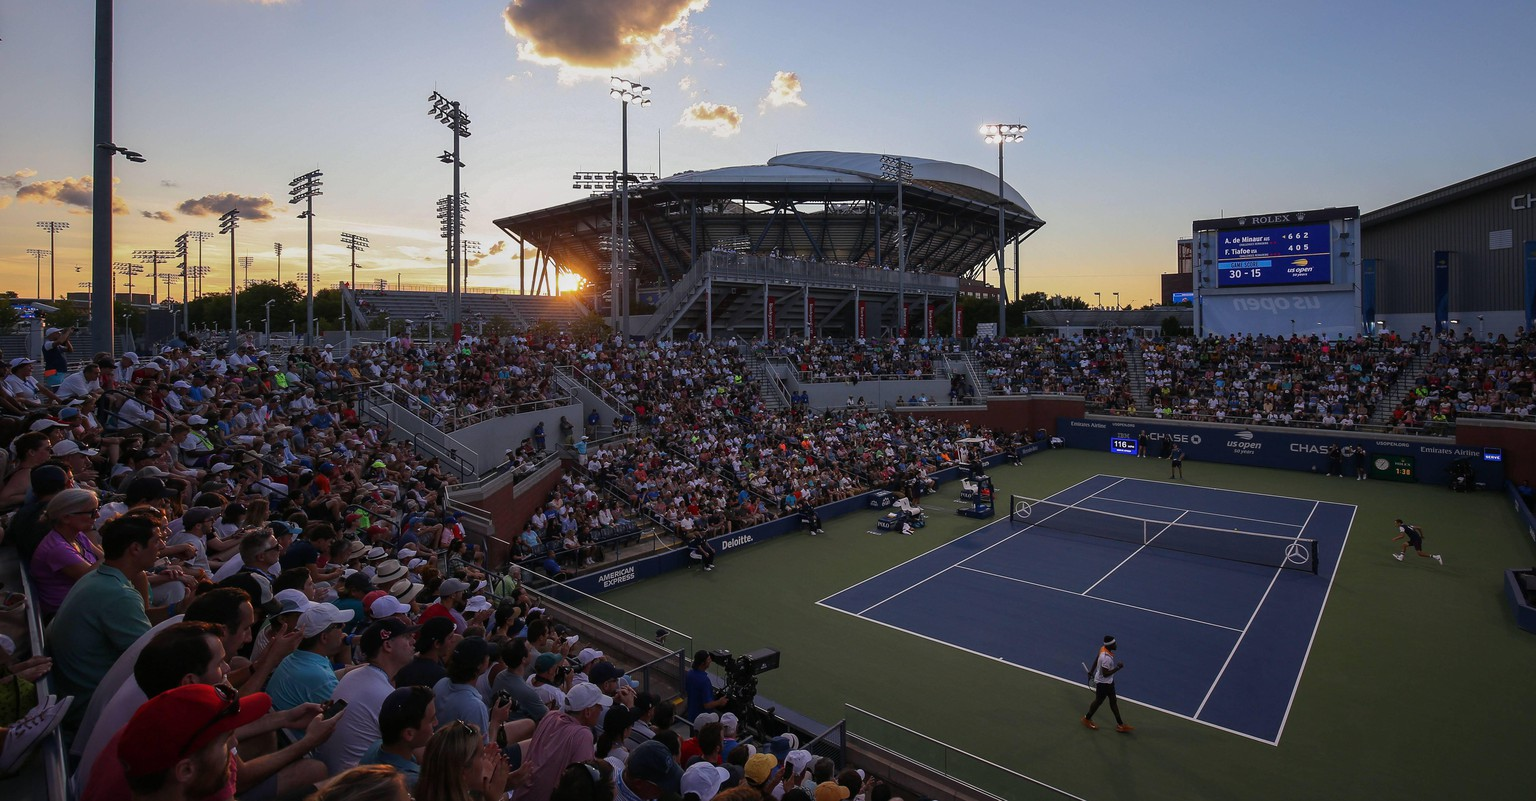 US OPEN Feature , Blick von oben auf Court 17 , Sonnenu ntergang,Arthur Ashe Stadion im Hintergrund, Panorama, Abendstimmung. *** US OPEN feature View from above on Court 17 Sunrise Arthur Ashe Stadium in the background Panorama Evening mood Copyright: xJuergenxHasenkopfx